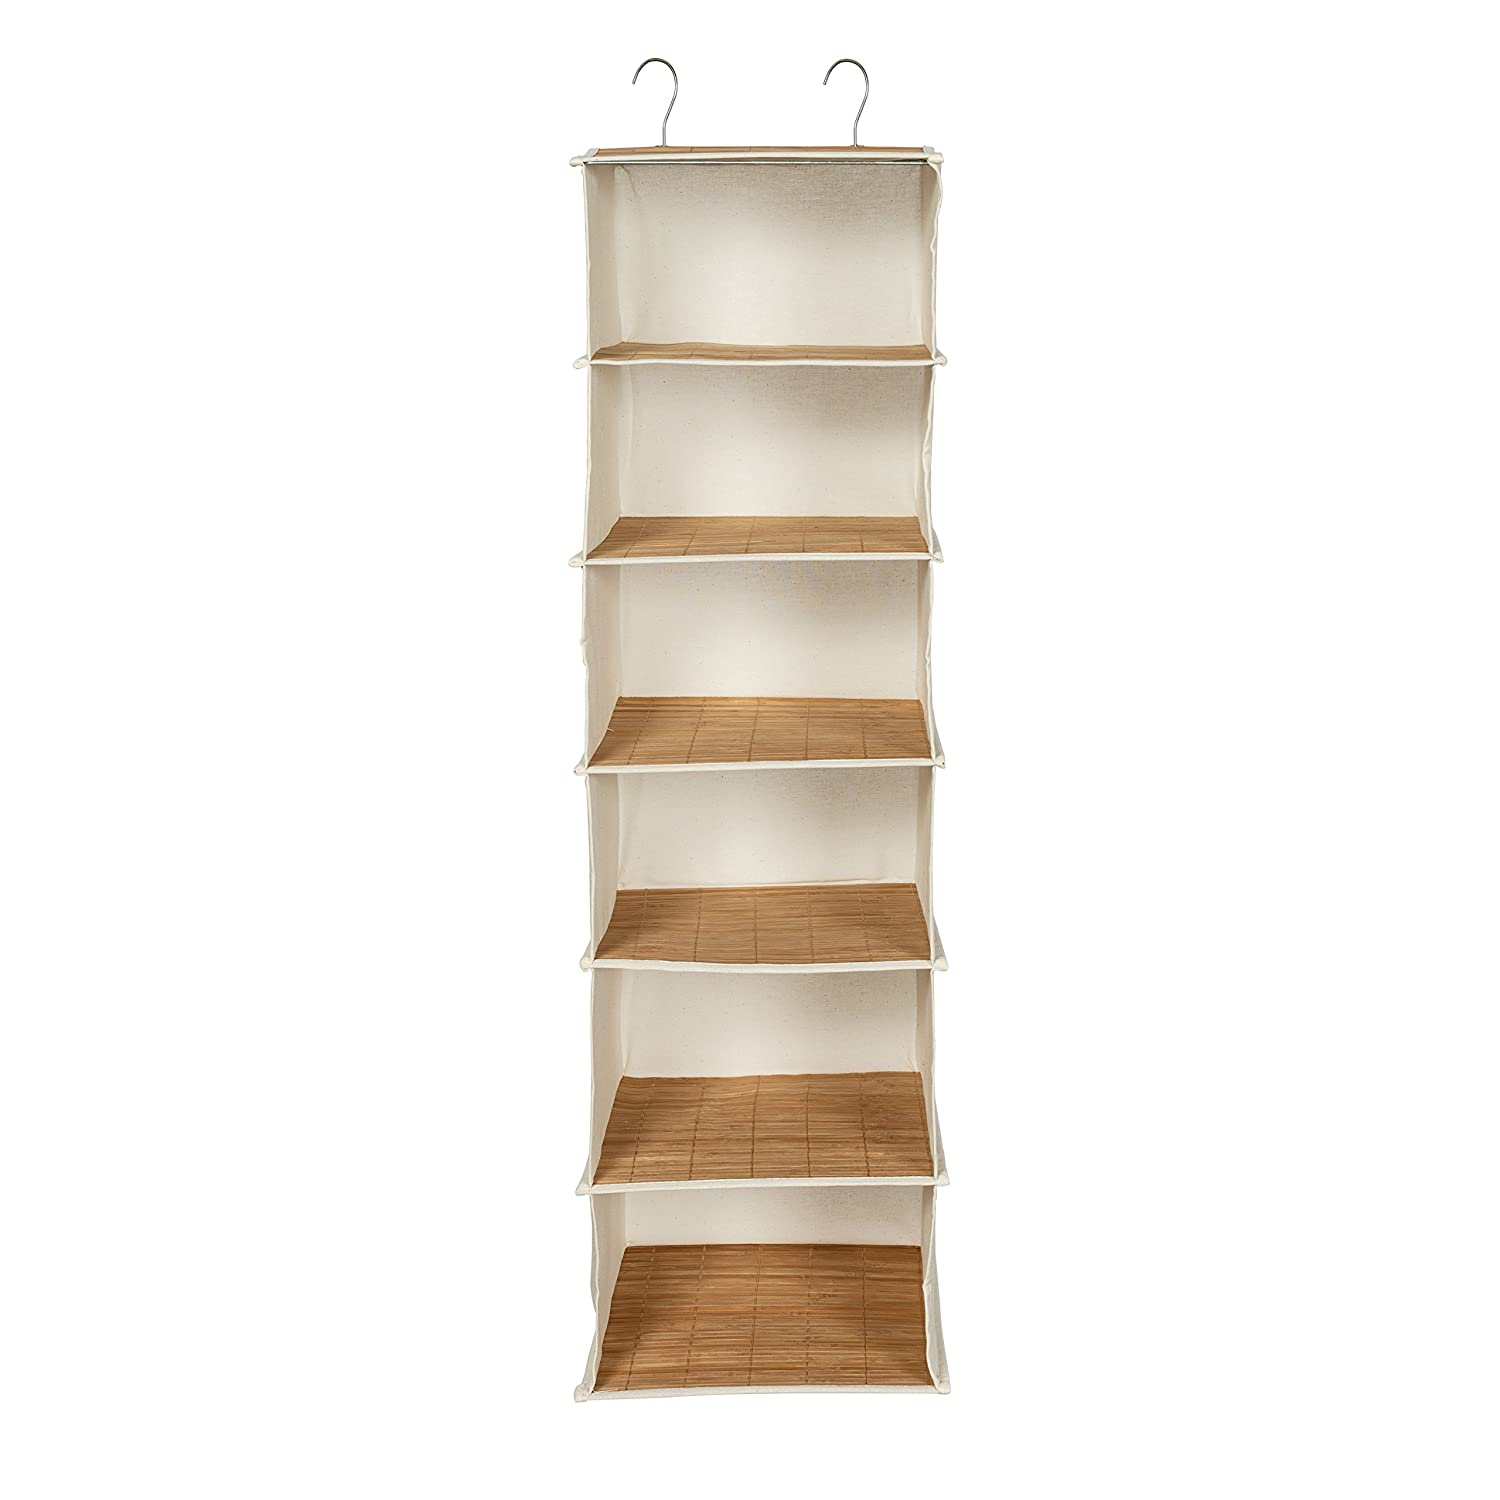 Honey Can Do Sft 01003 6 Shelf Hanging Closet Organizer, Bamboocanvas Amazoncouk Kitchen &